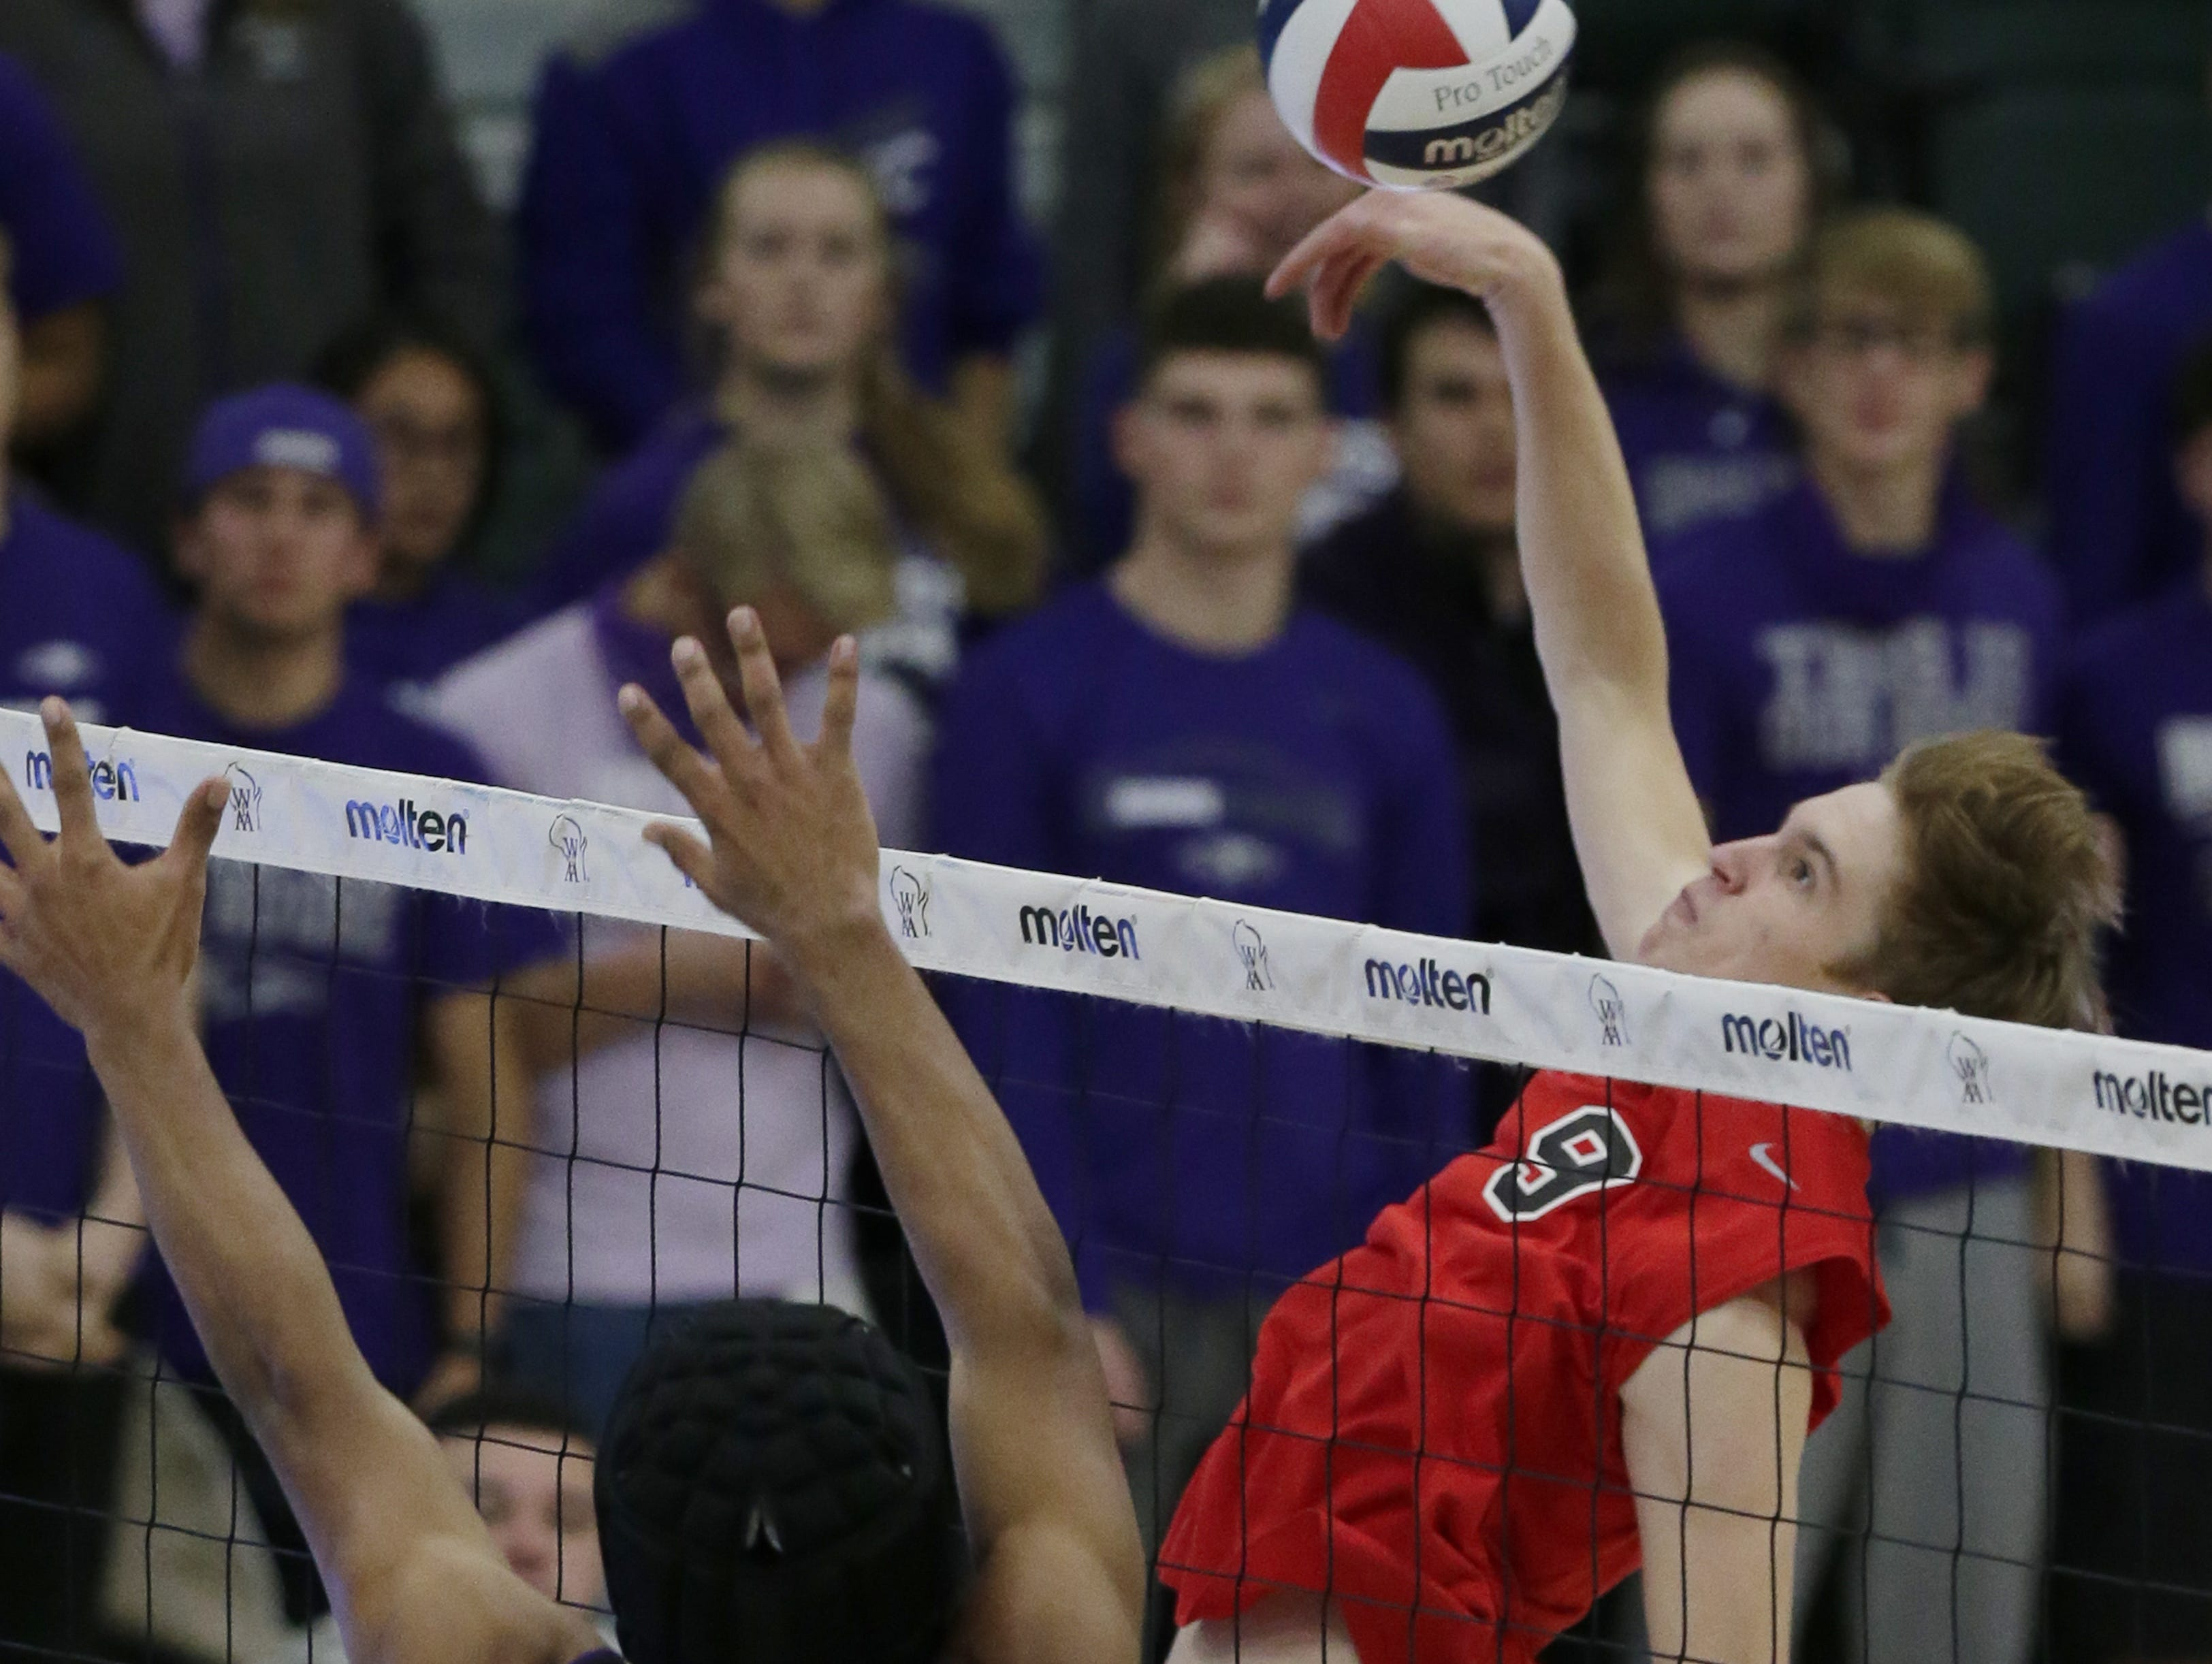 Kimberly's Tommy Clausz goes up for a hit during the game.  Kimberly Papermakers played Kenosha Indian Trail Hawks in Division 1 WIAA boys volleyball playoff semi-final, Saturday, November 10, 2018 at Wisconsin Lutheran College in Milwaukee, Wis. Joe Sienkiewicz/USA Today NETWORK-Wisconsin